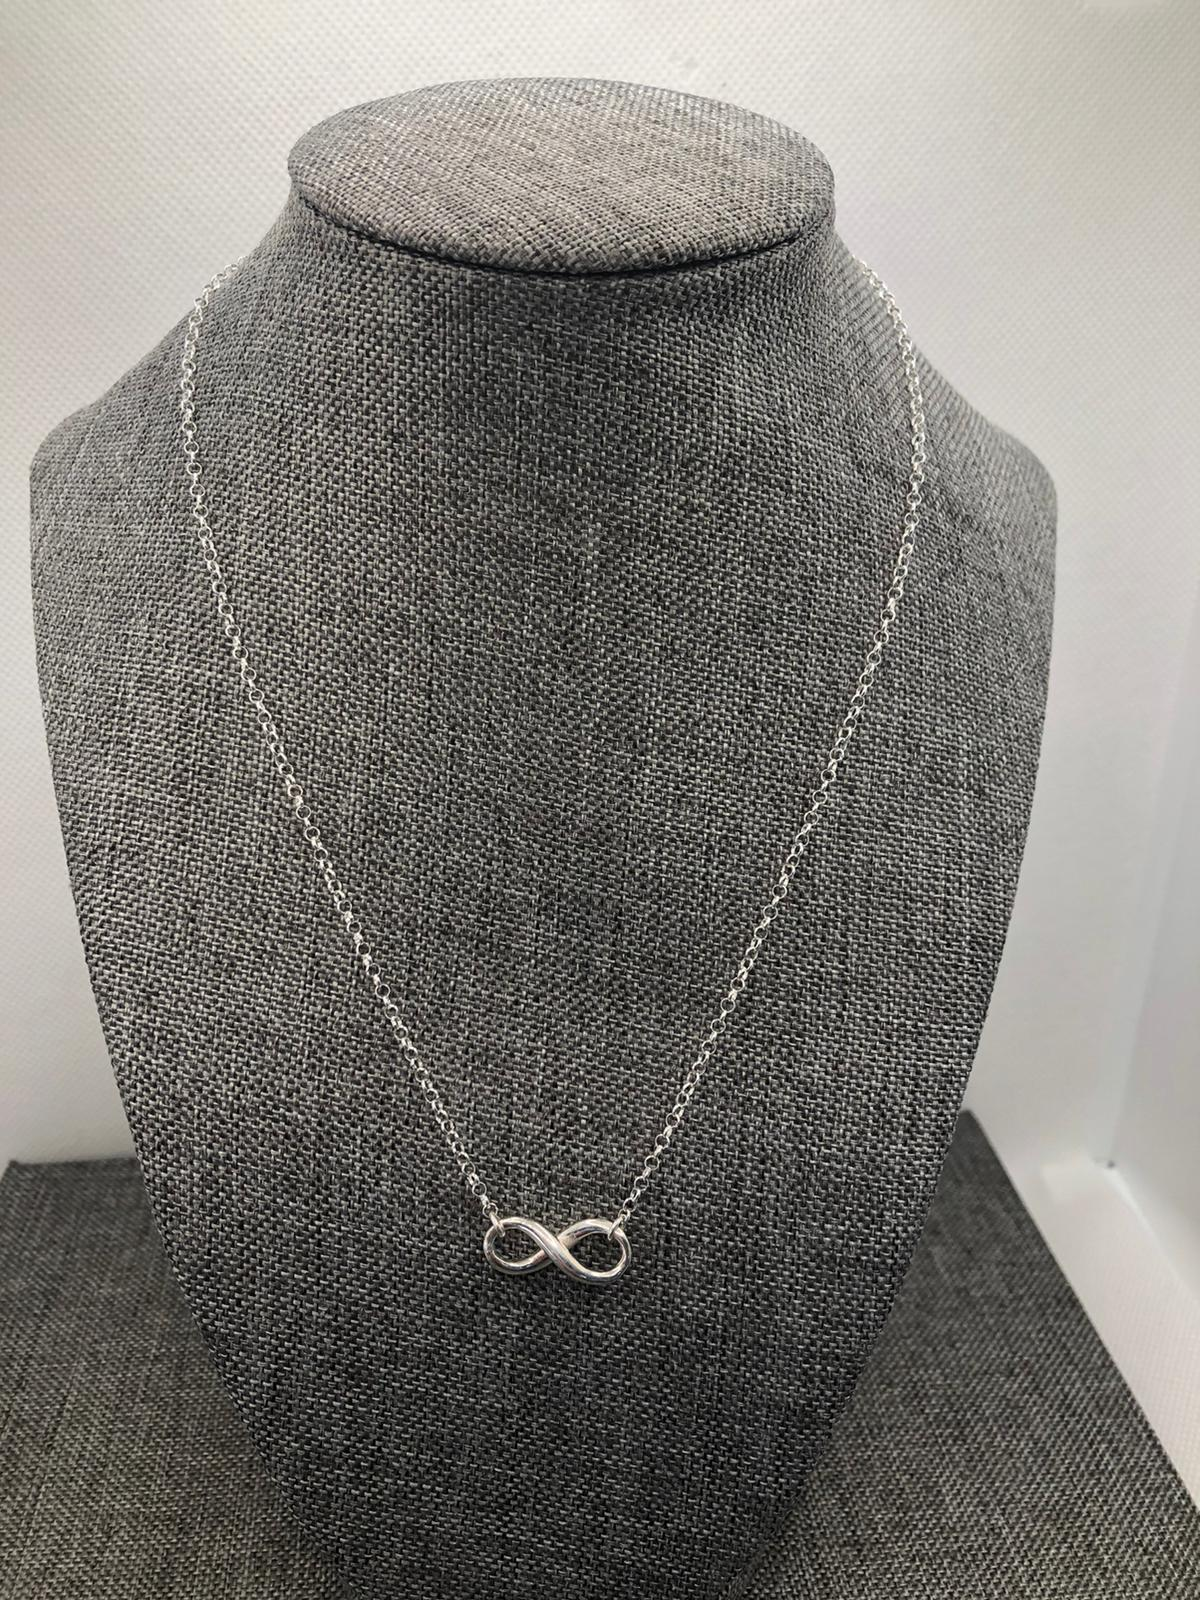 Infinity Necklace, Sterling Silver  (Polished Finish) by Chris Lewis